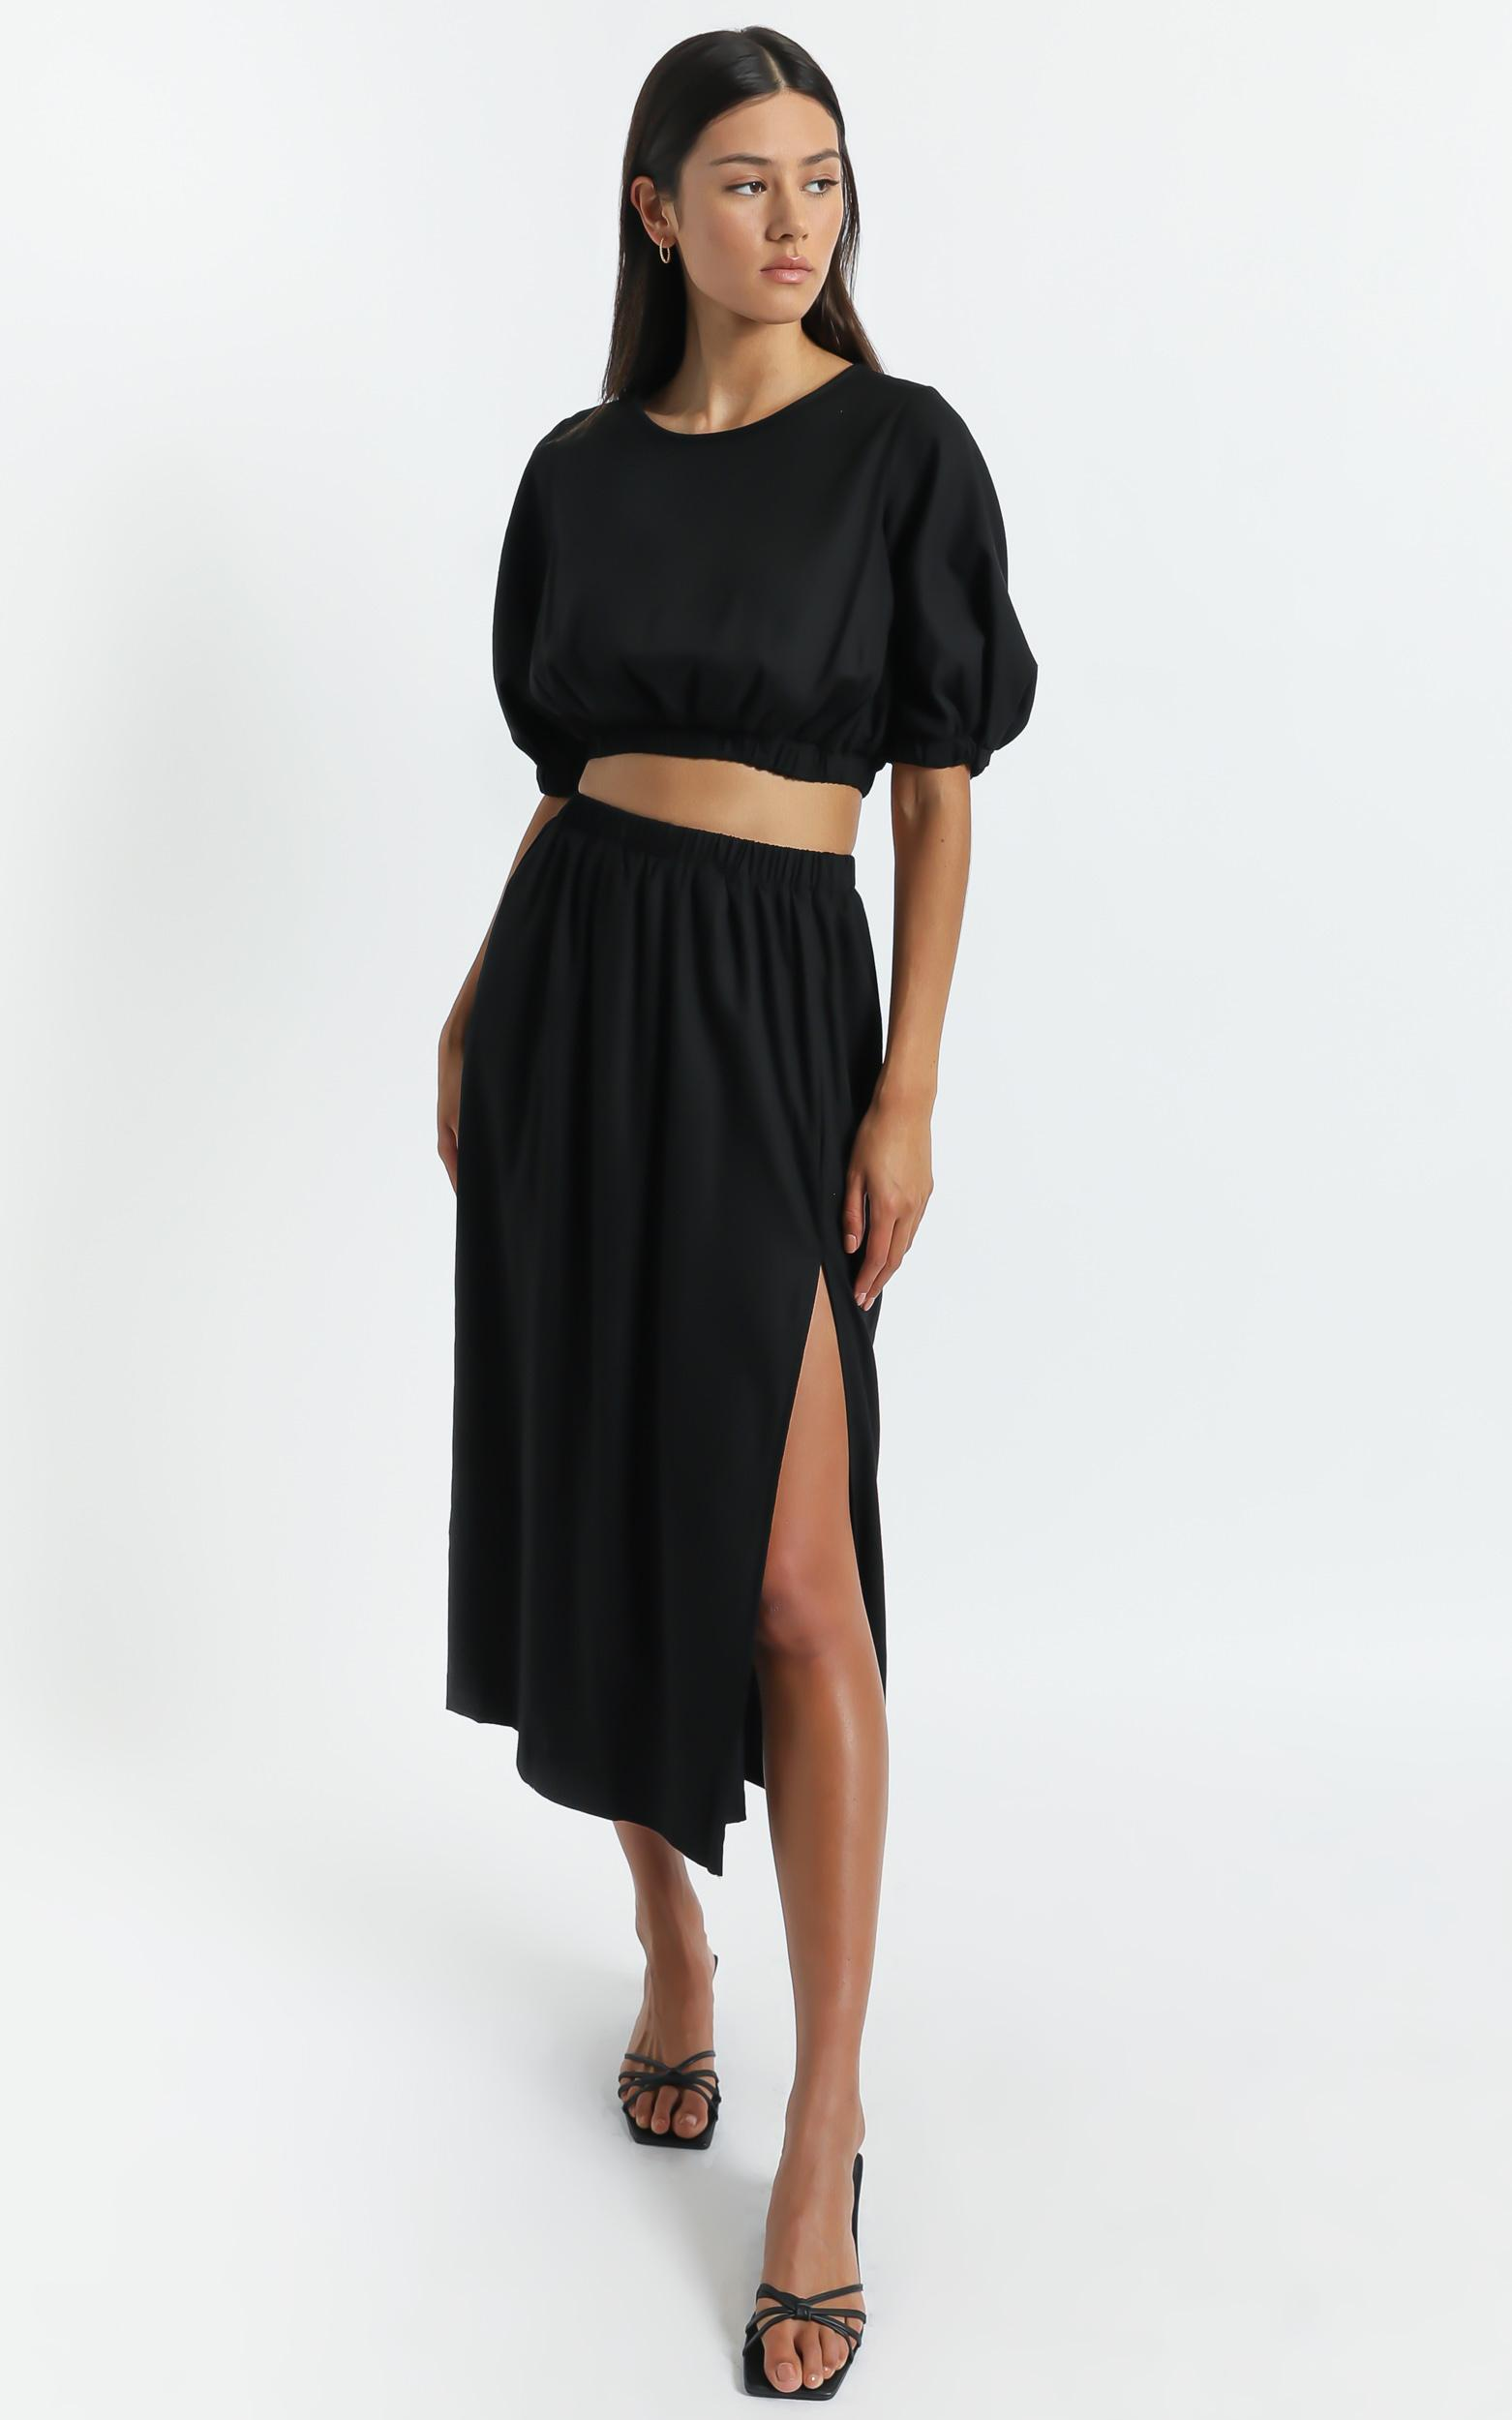 Asta Two Piece set in Black - 6 (XS), Black, hi-res image number null